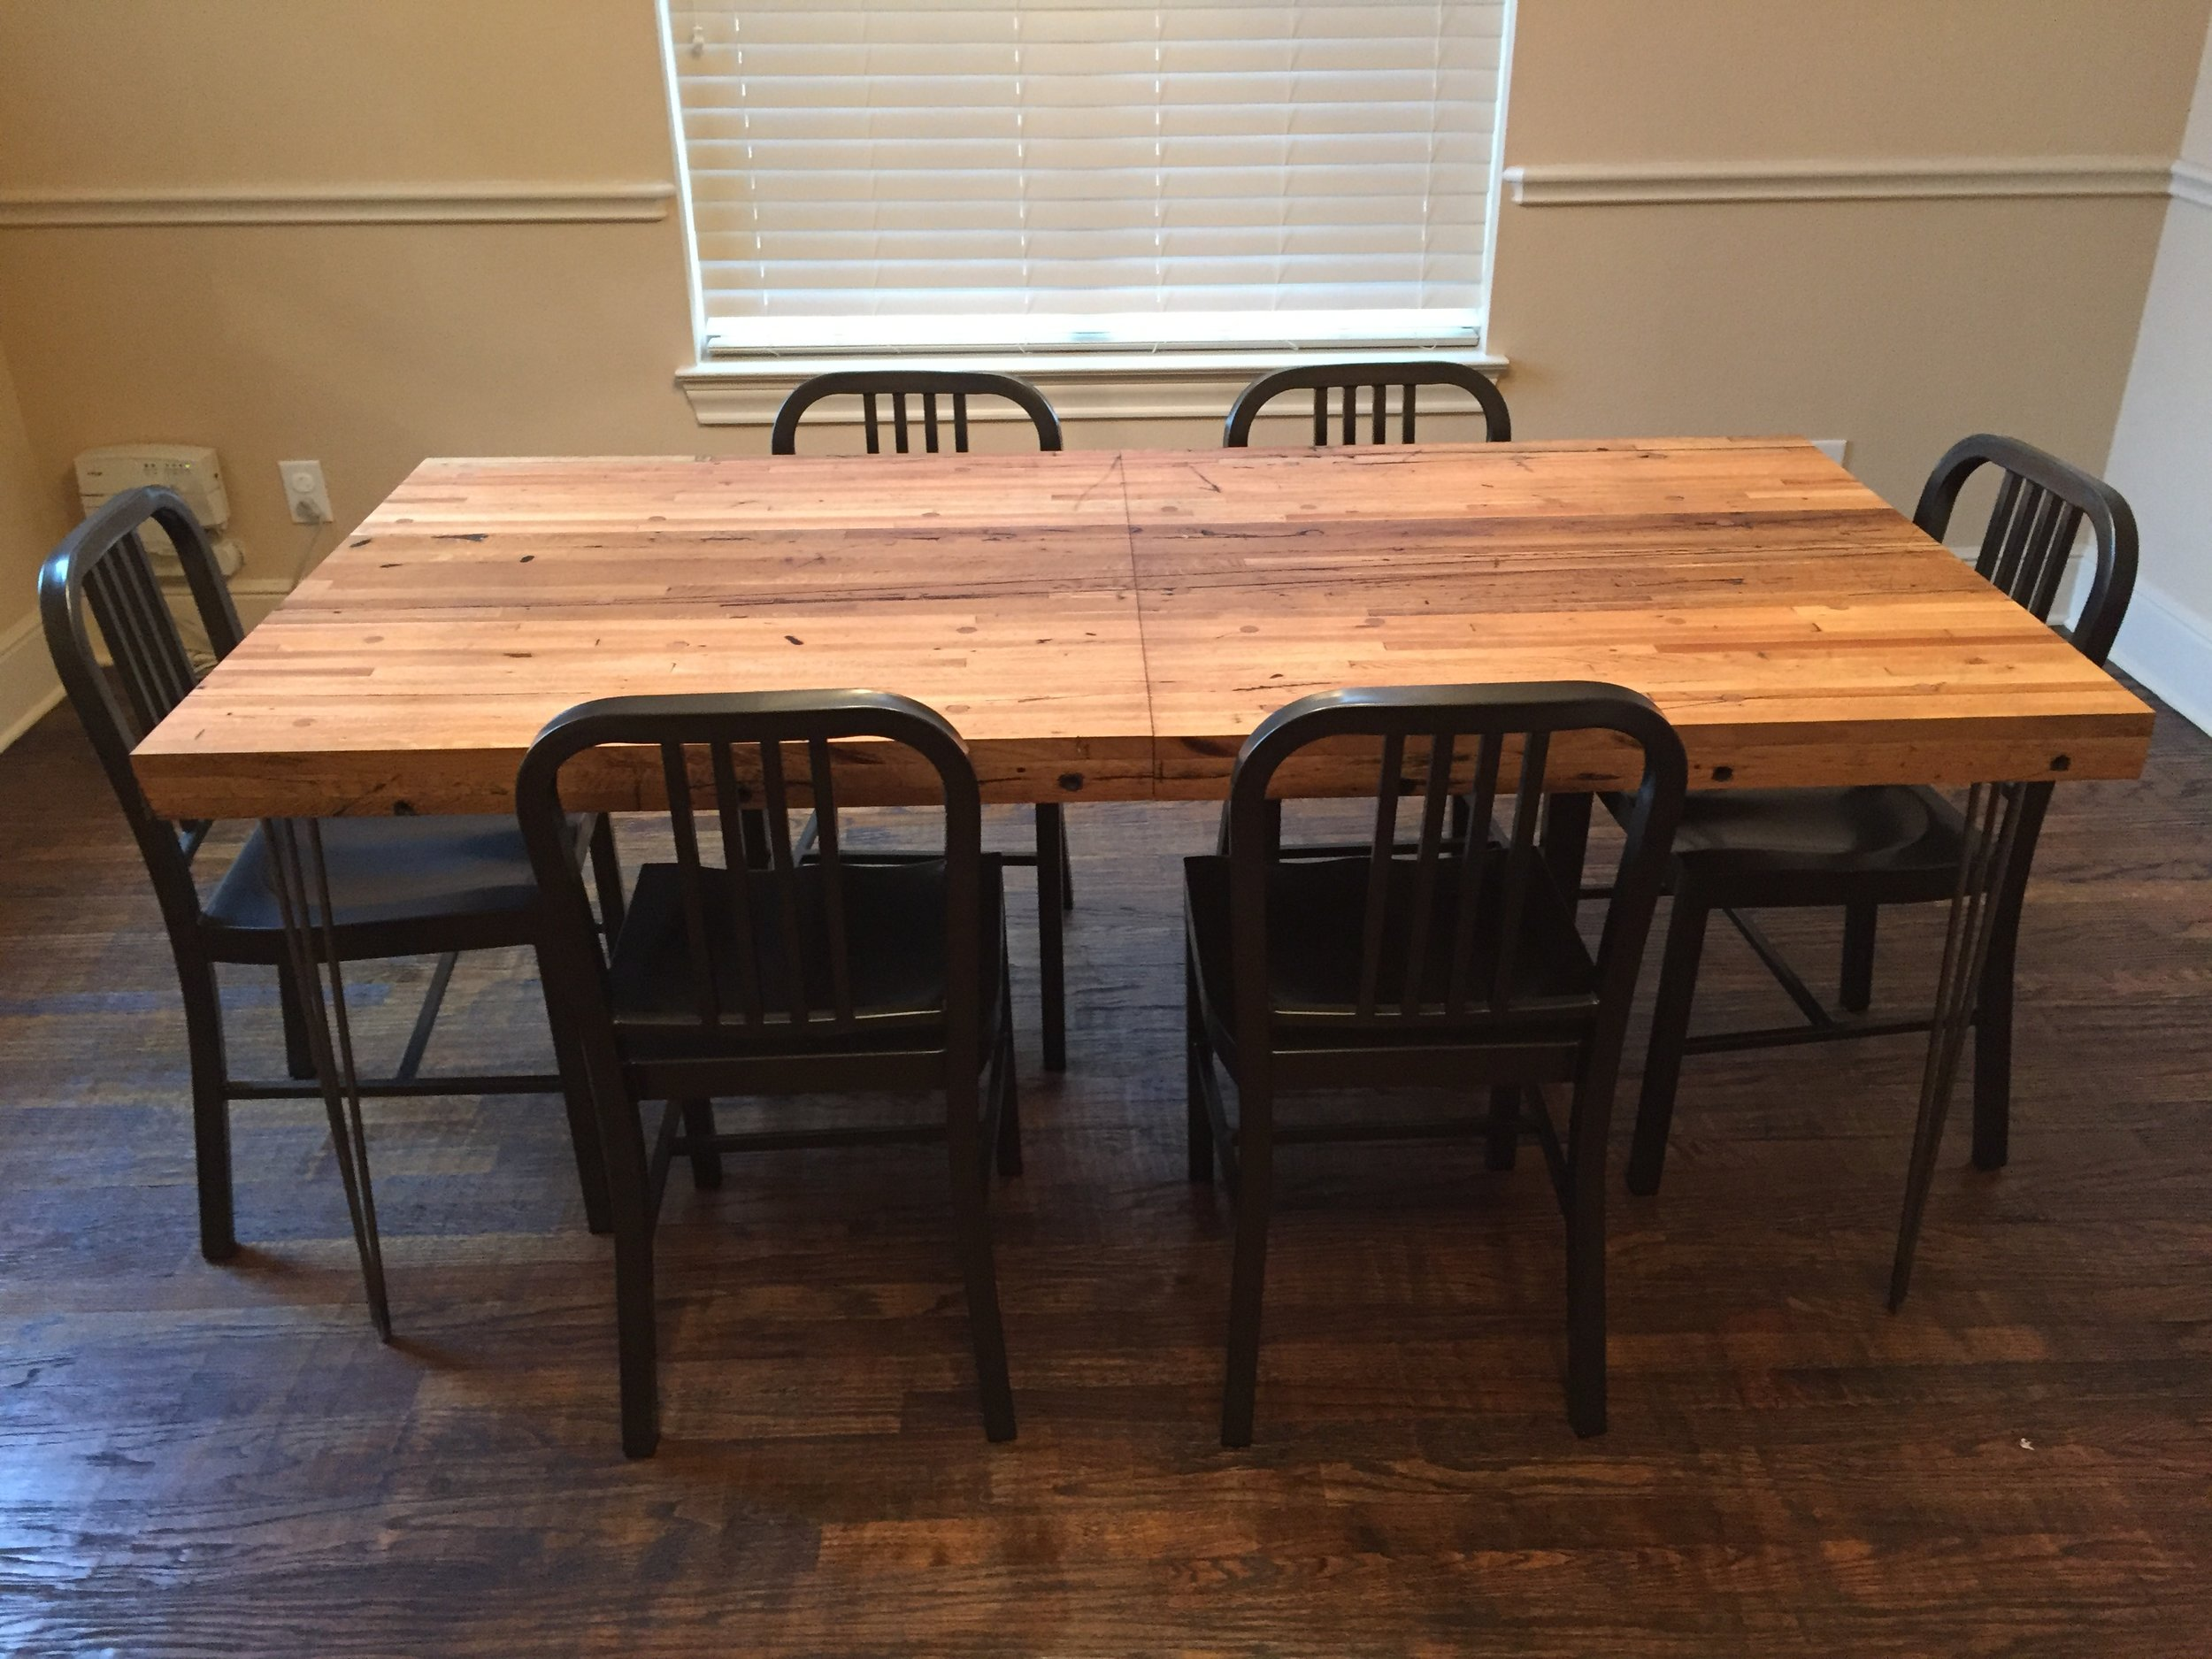 Reclaimed Oak Modern Industrial Table.jpg